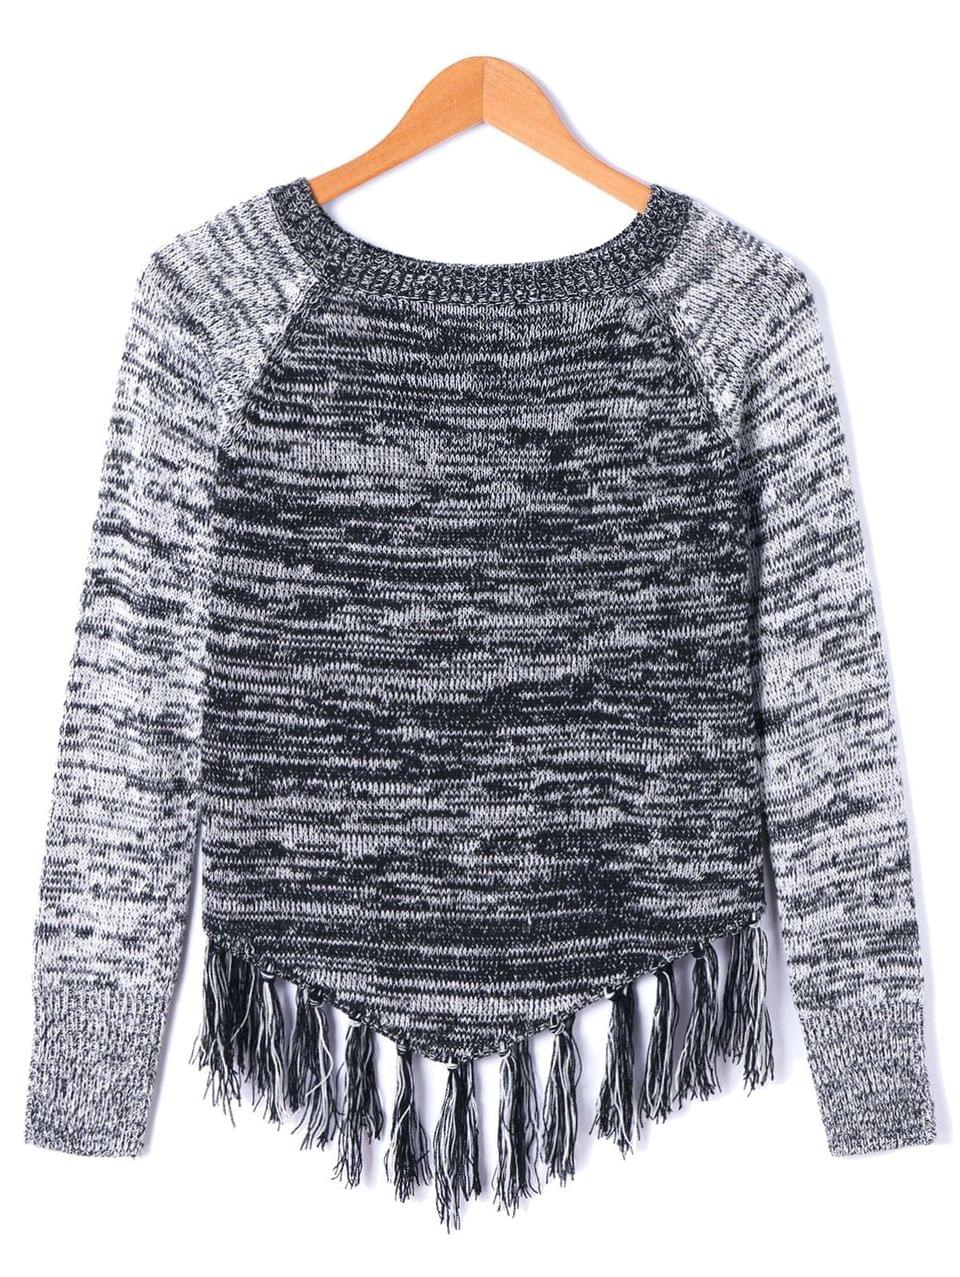 Women's Tassel Long Sleeve Sweater - 2xl